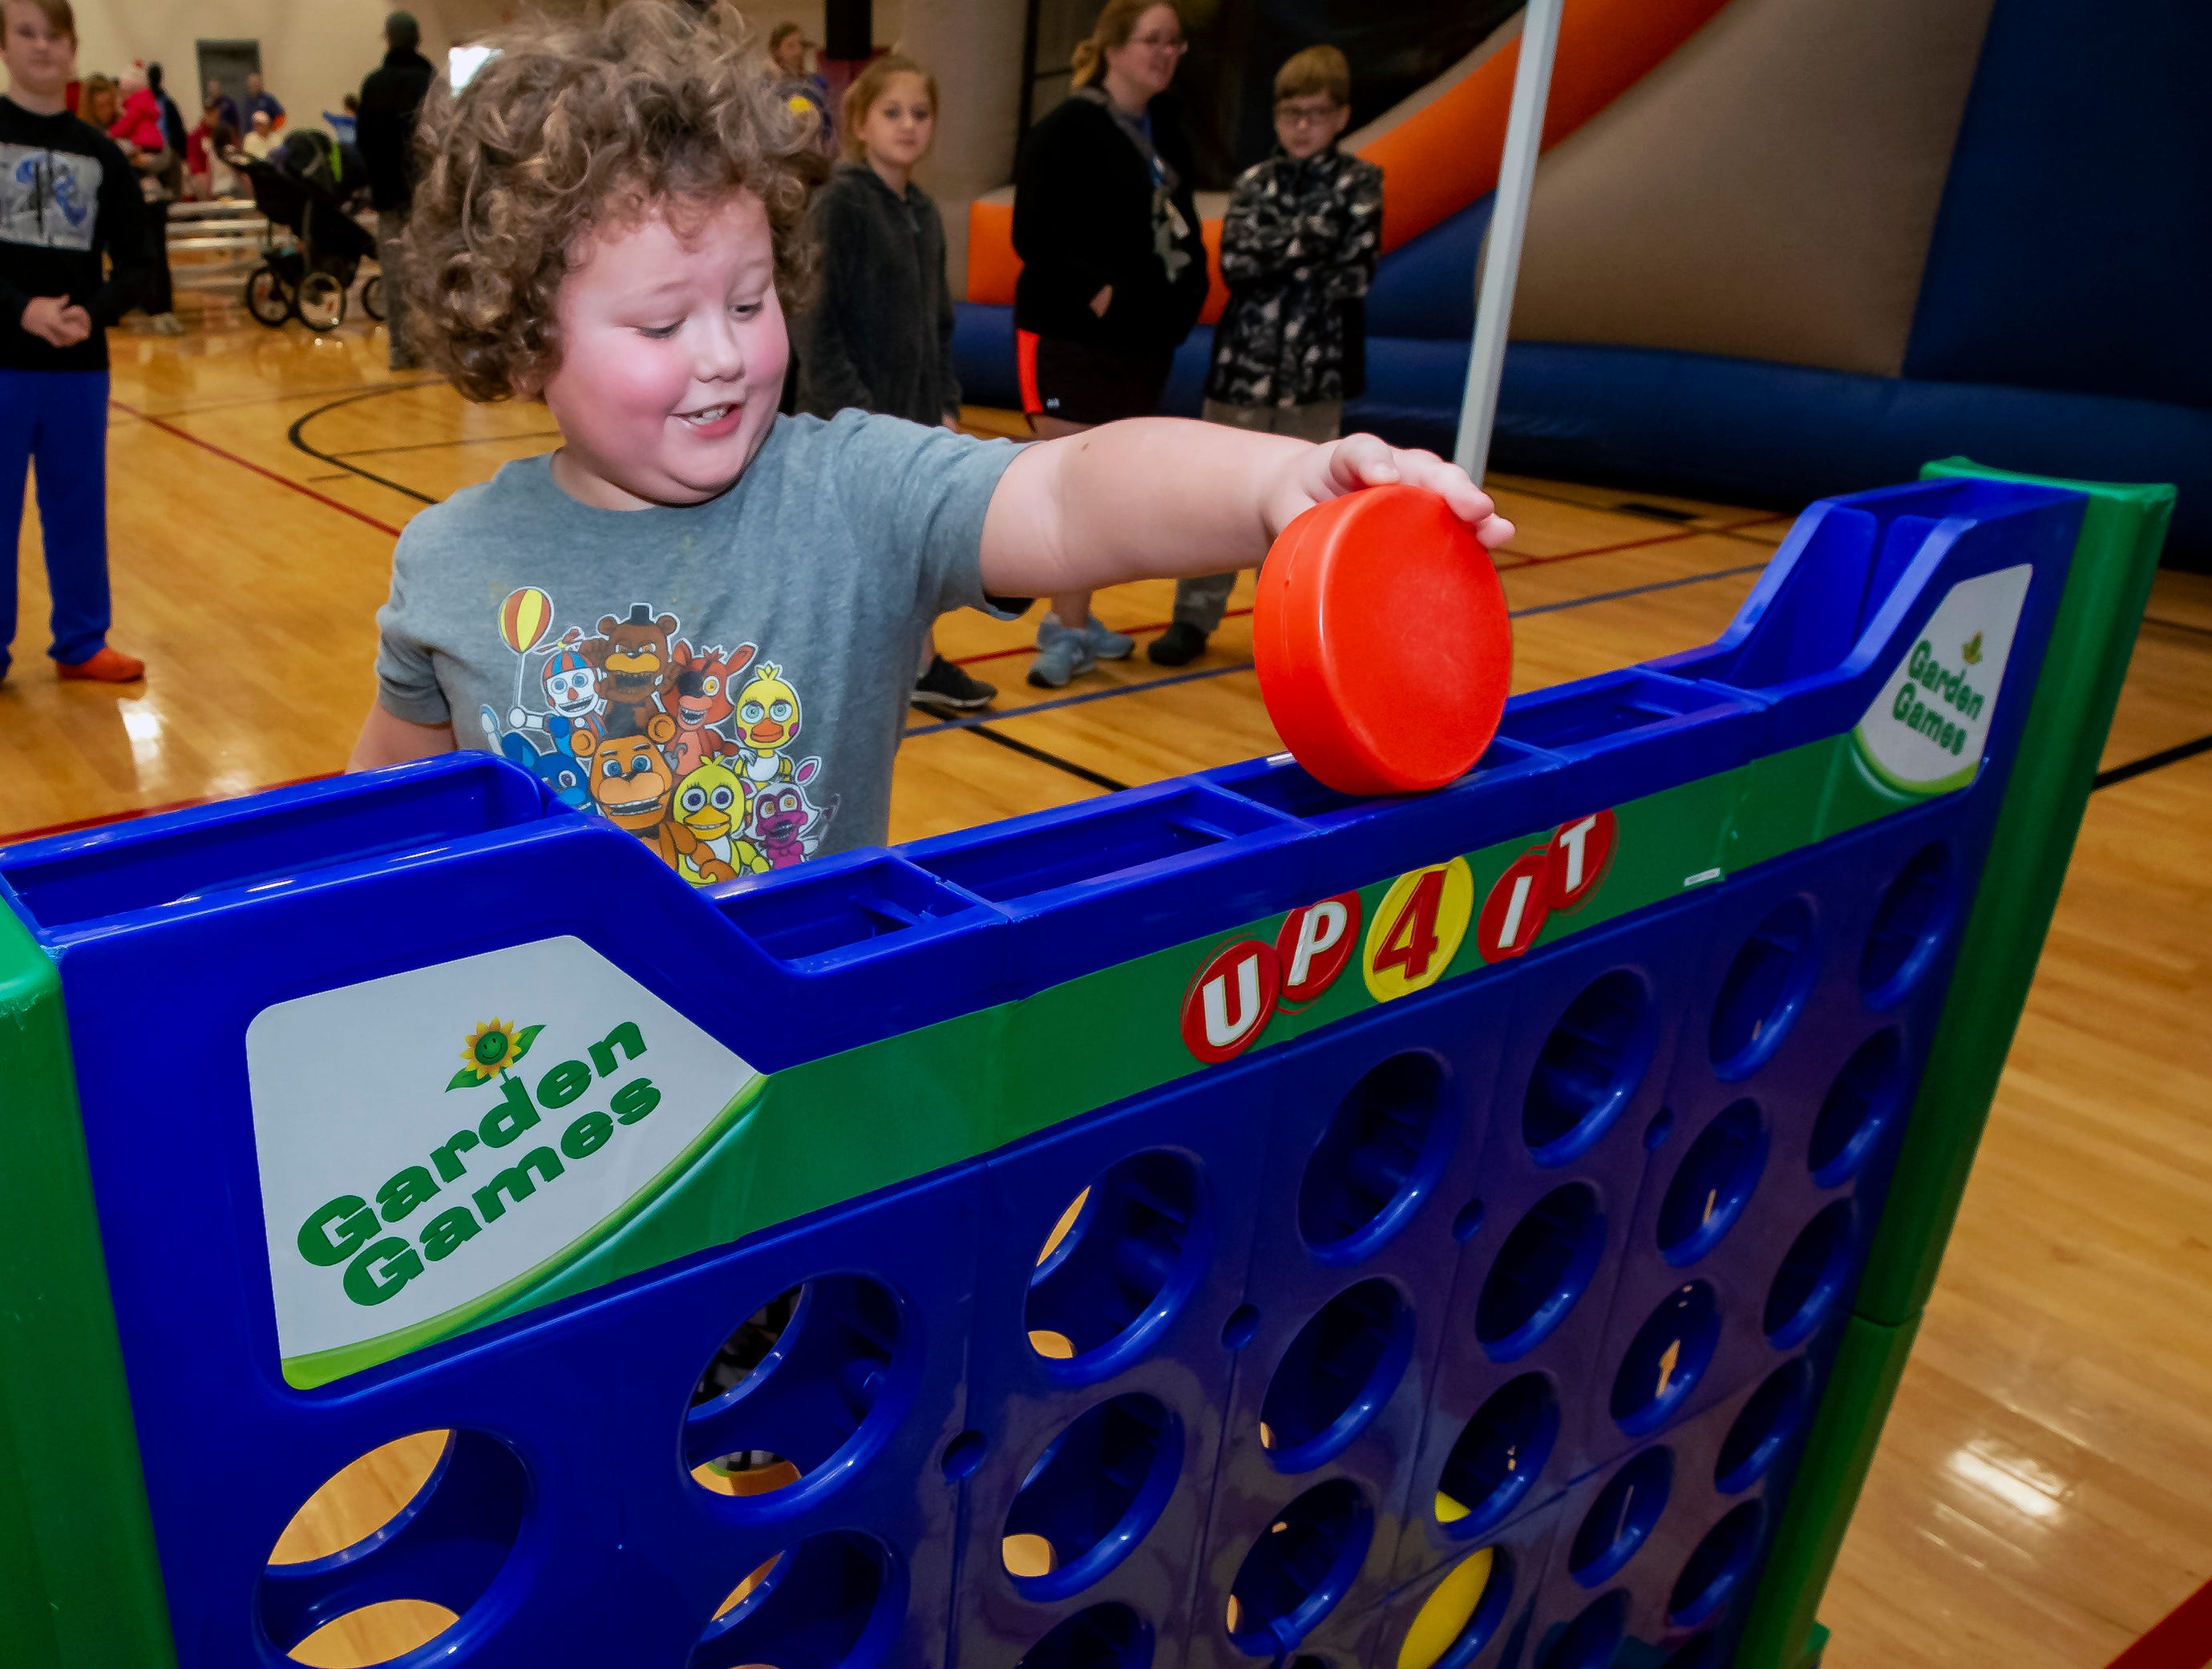 Rory Brock plays a carnival game at the 17th annual Polar Bear Plunge held at SportsCom on Saturday Jan. 5, 2019.